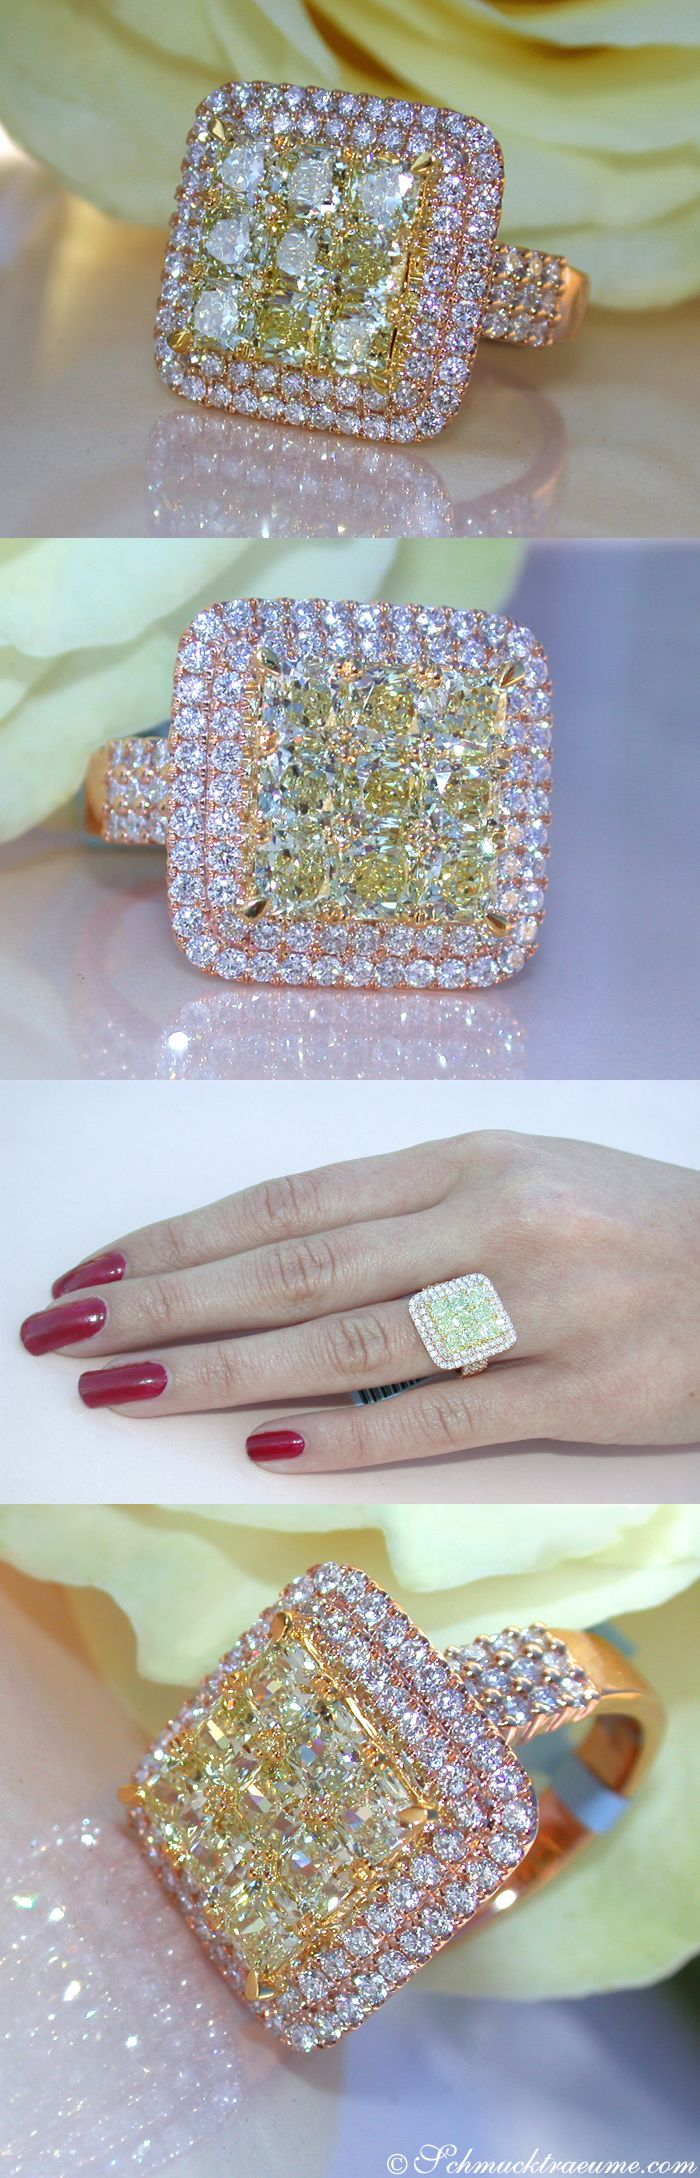 Top 25+ best White diamonds ideas on Pinterest | White timberlands ...